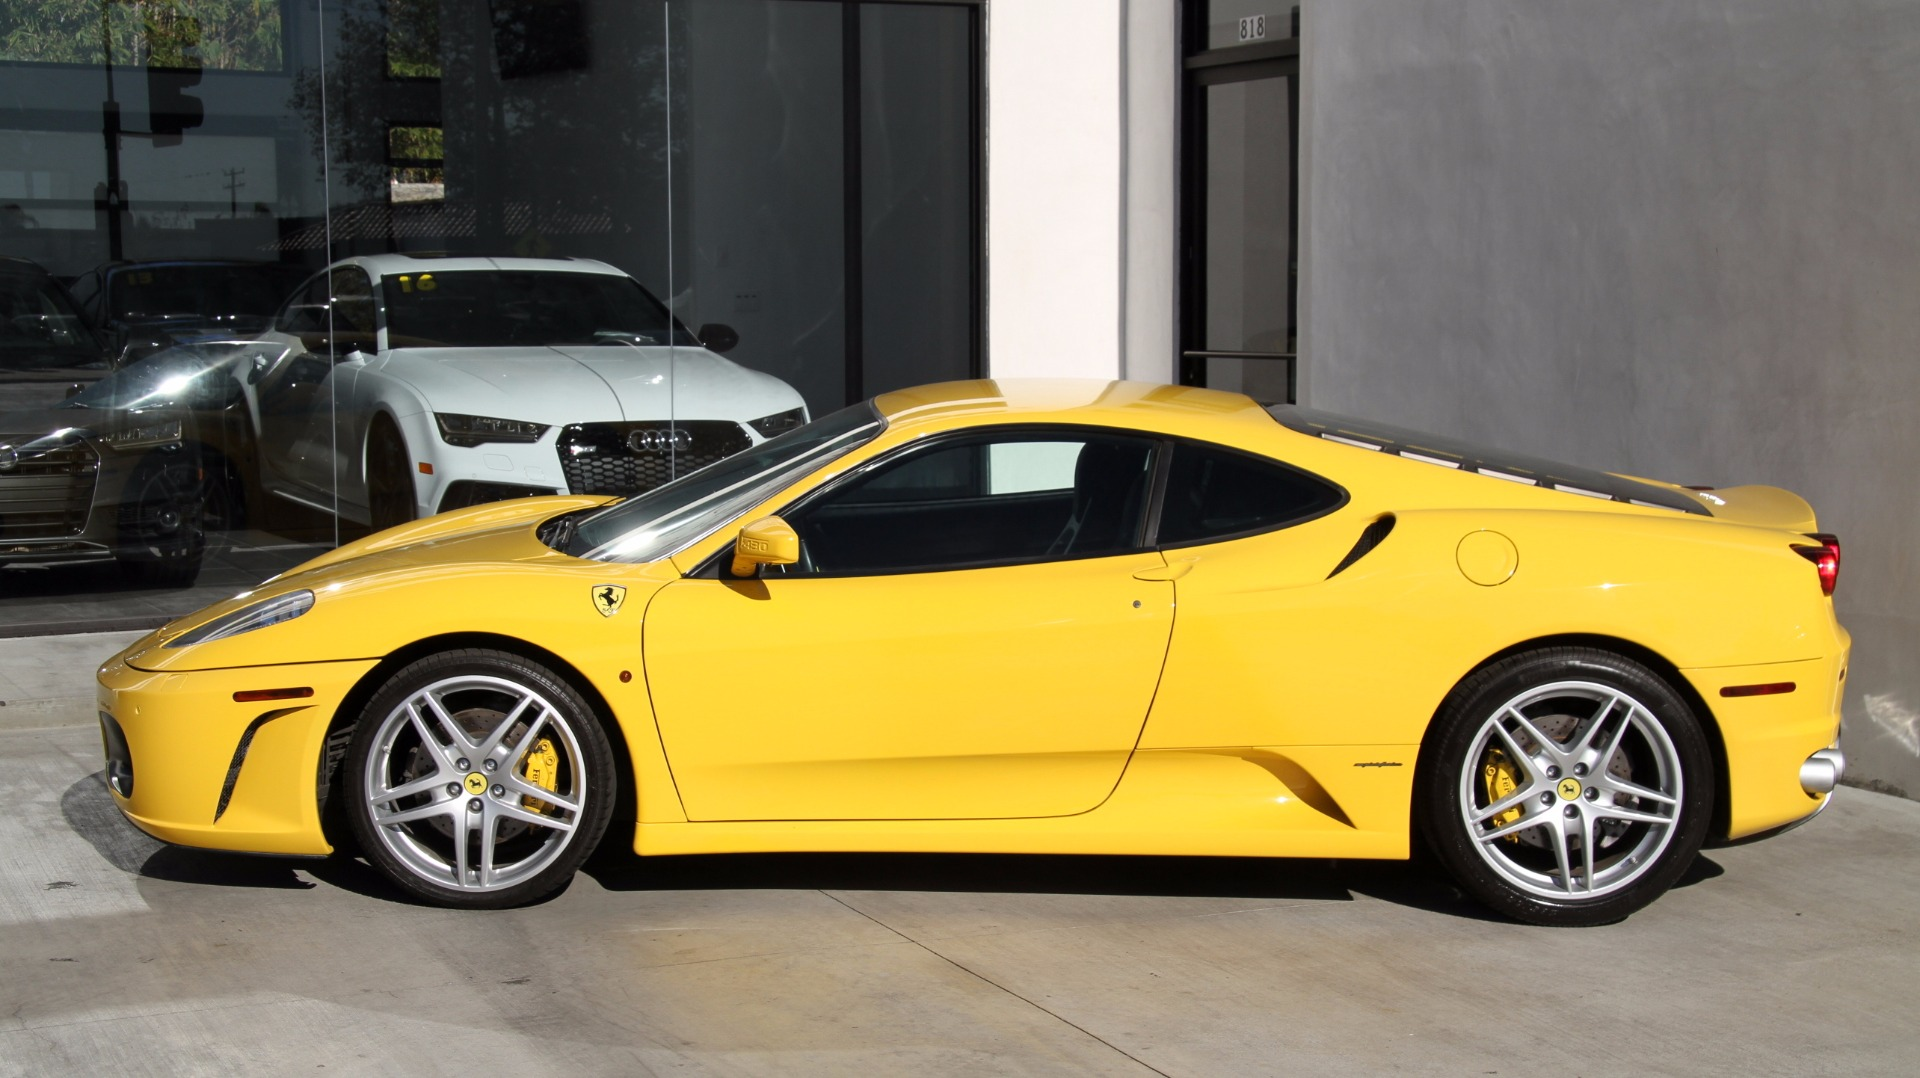 How To Get A Free Carfax Report >> 2007 Ferrari F430 F1 Stock # 5483A for sale near Redondo